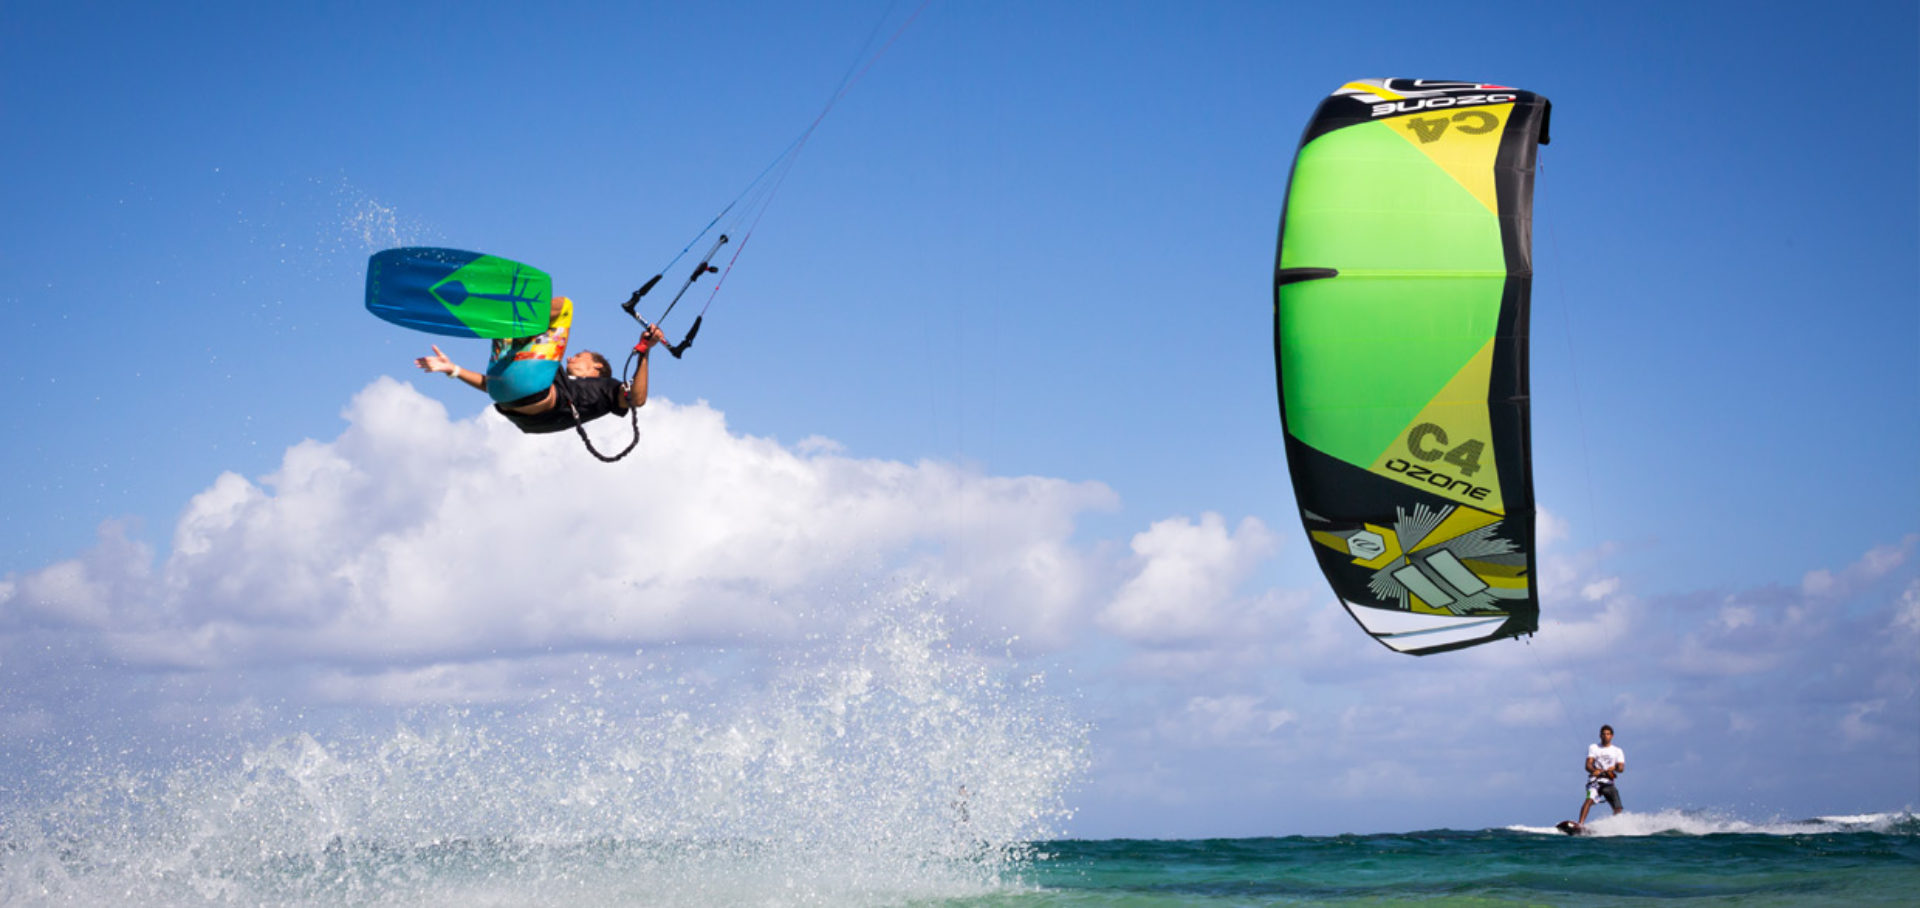 The Kite Surf Place